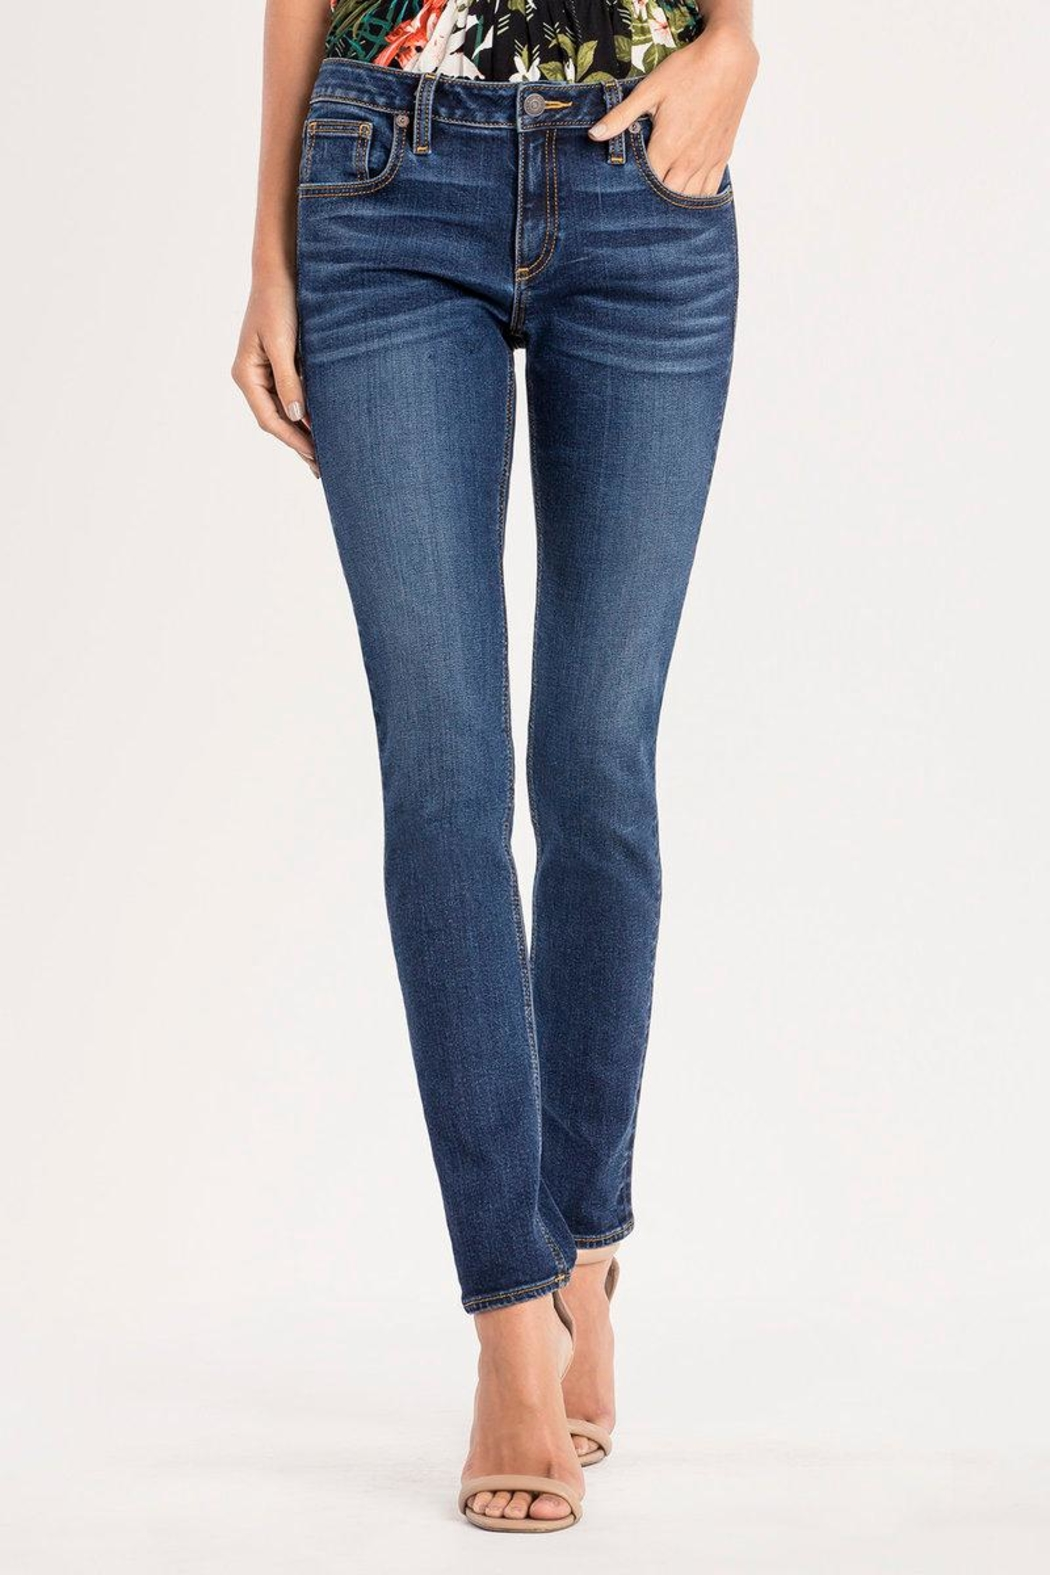 Miss Me Essential Midrise Skinny Jean - Front Cropped Image